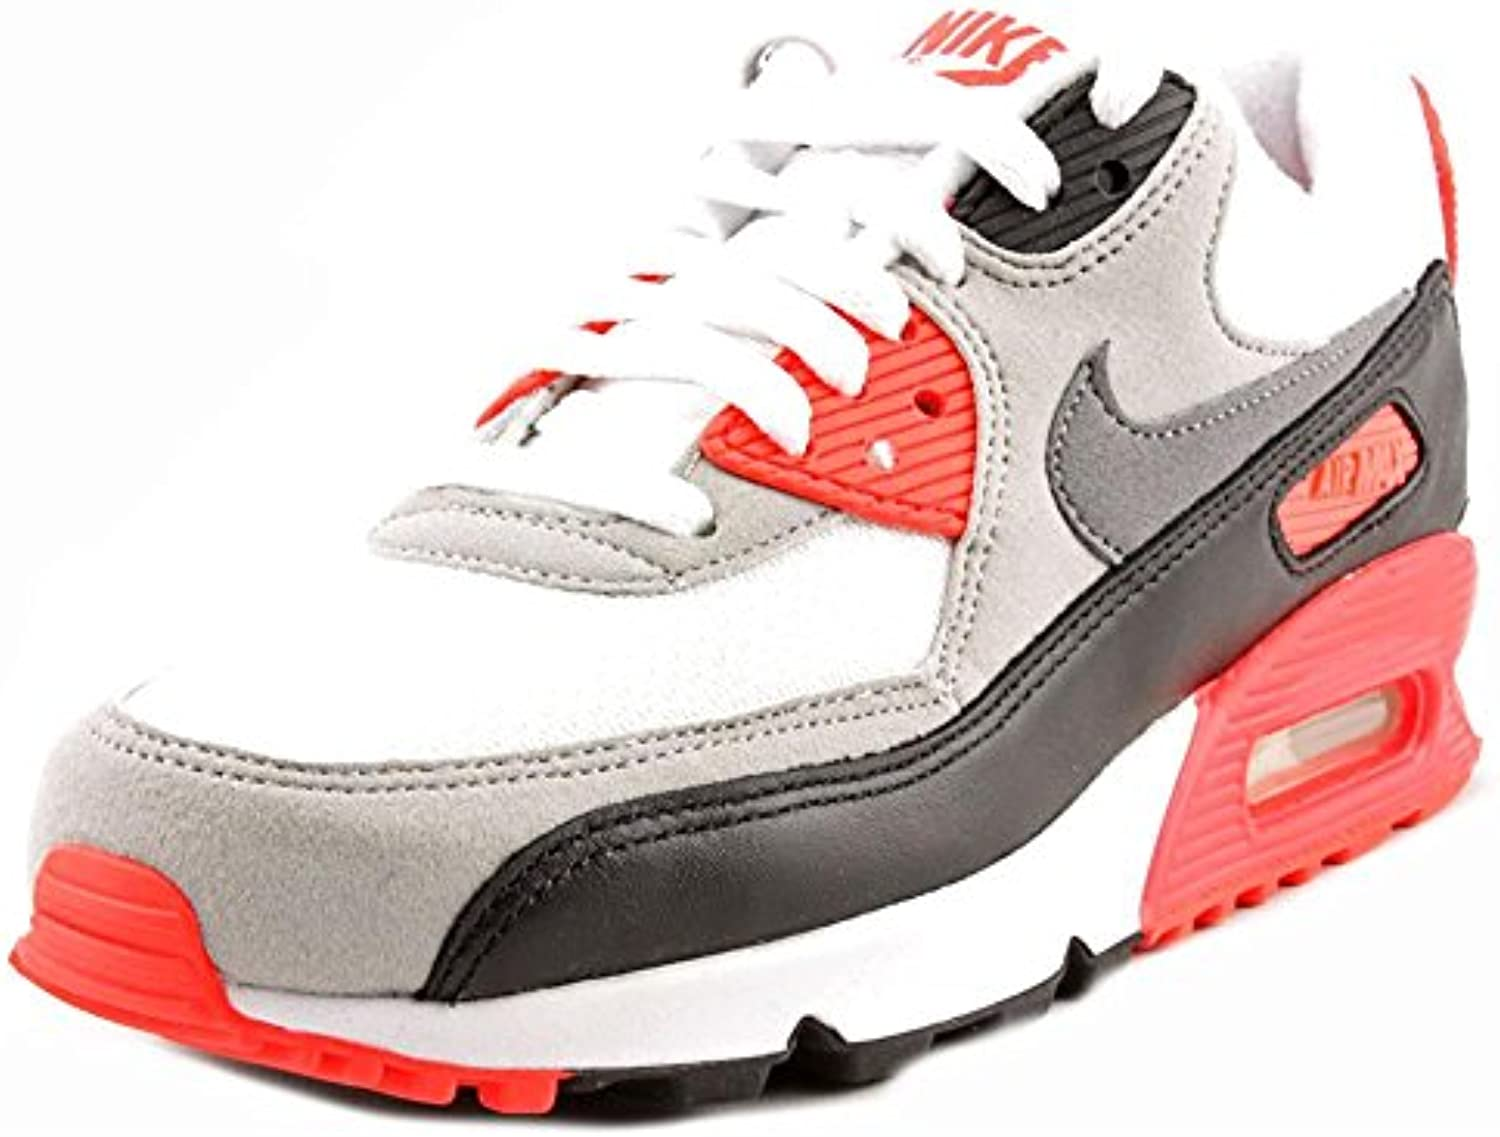 nike air max og infra lifestyle mesh  s lifestyle infra chaussure parent b00xw9h1xa daaf38